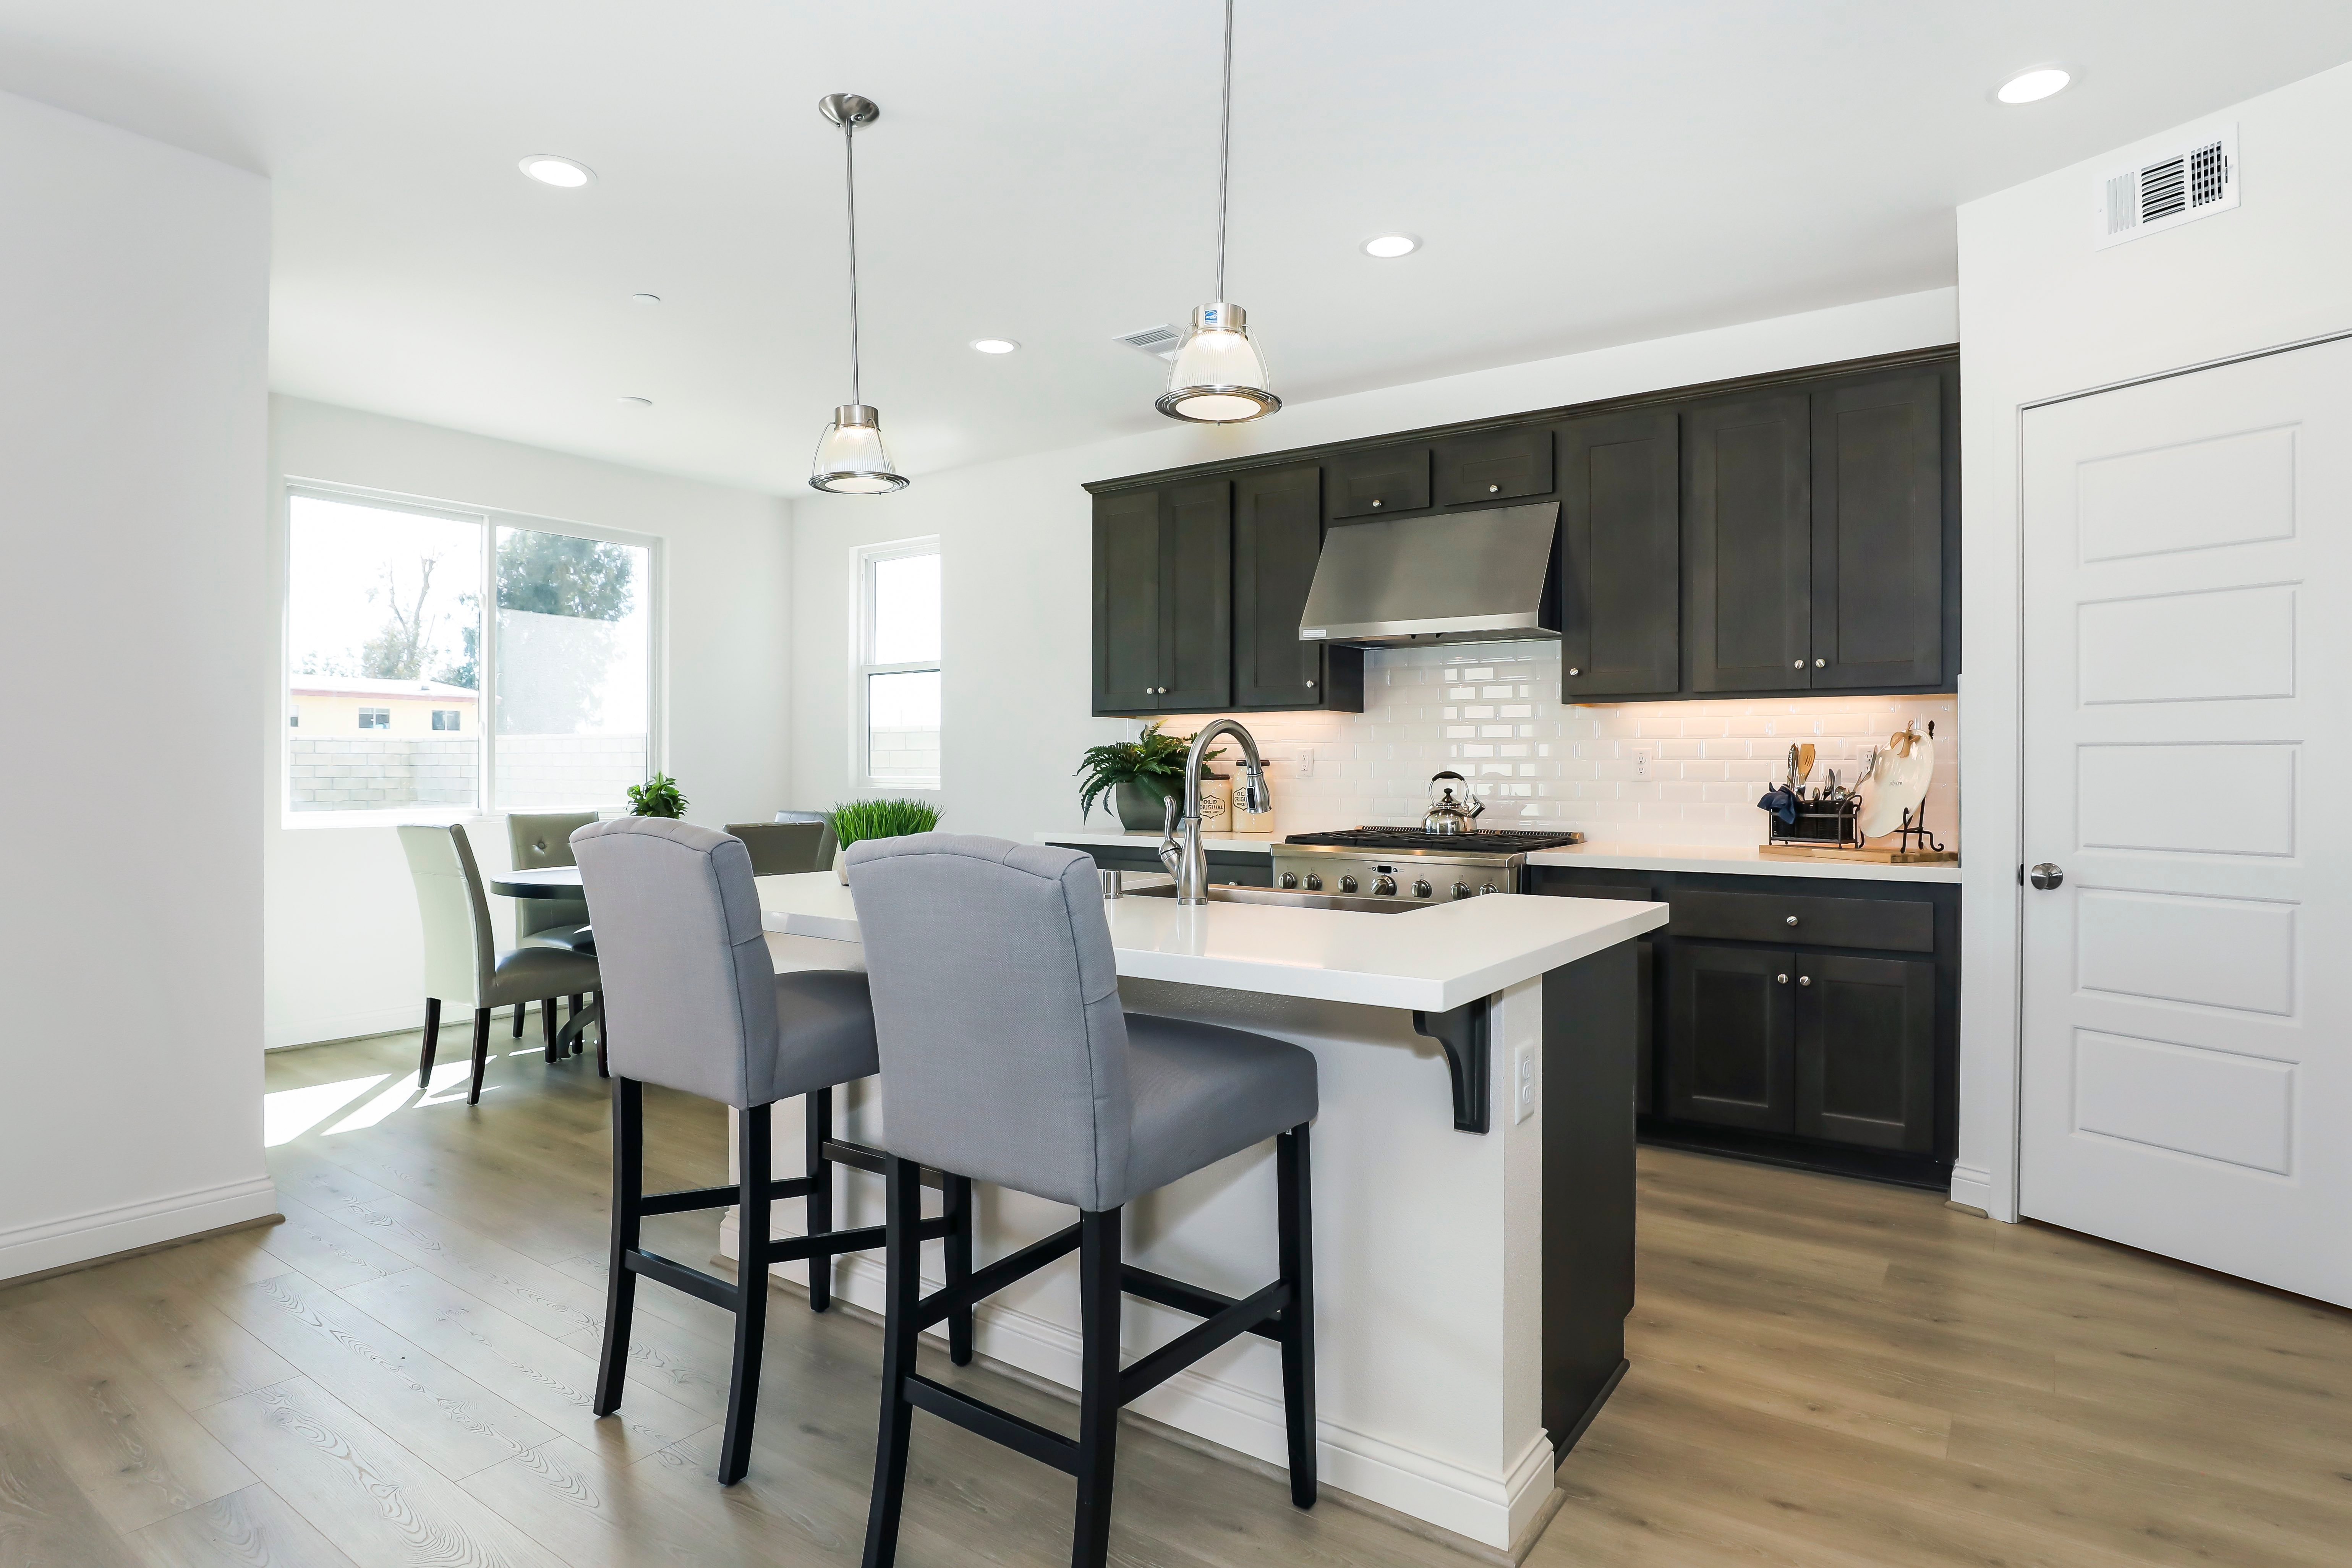 Building Quality For A Lifetime Williams Homes Blogpalmilla Offers Spacious New Homes In The San Fernando Valley From Williams Homes Building Quality For A Lifetime Williams Homes Blog